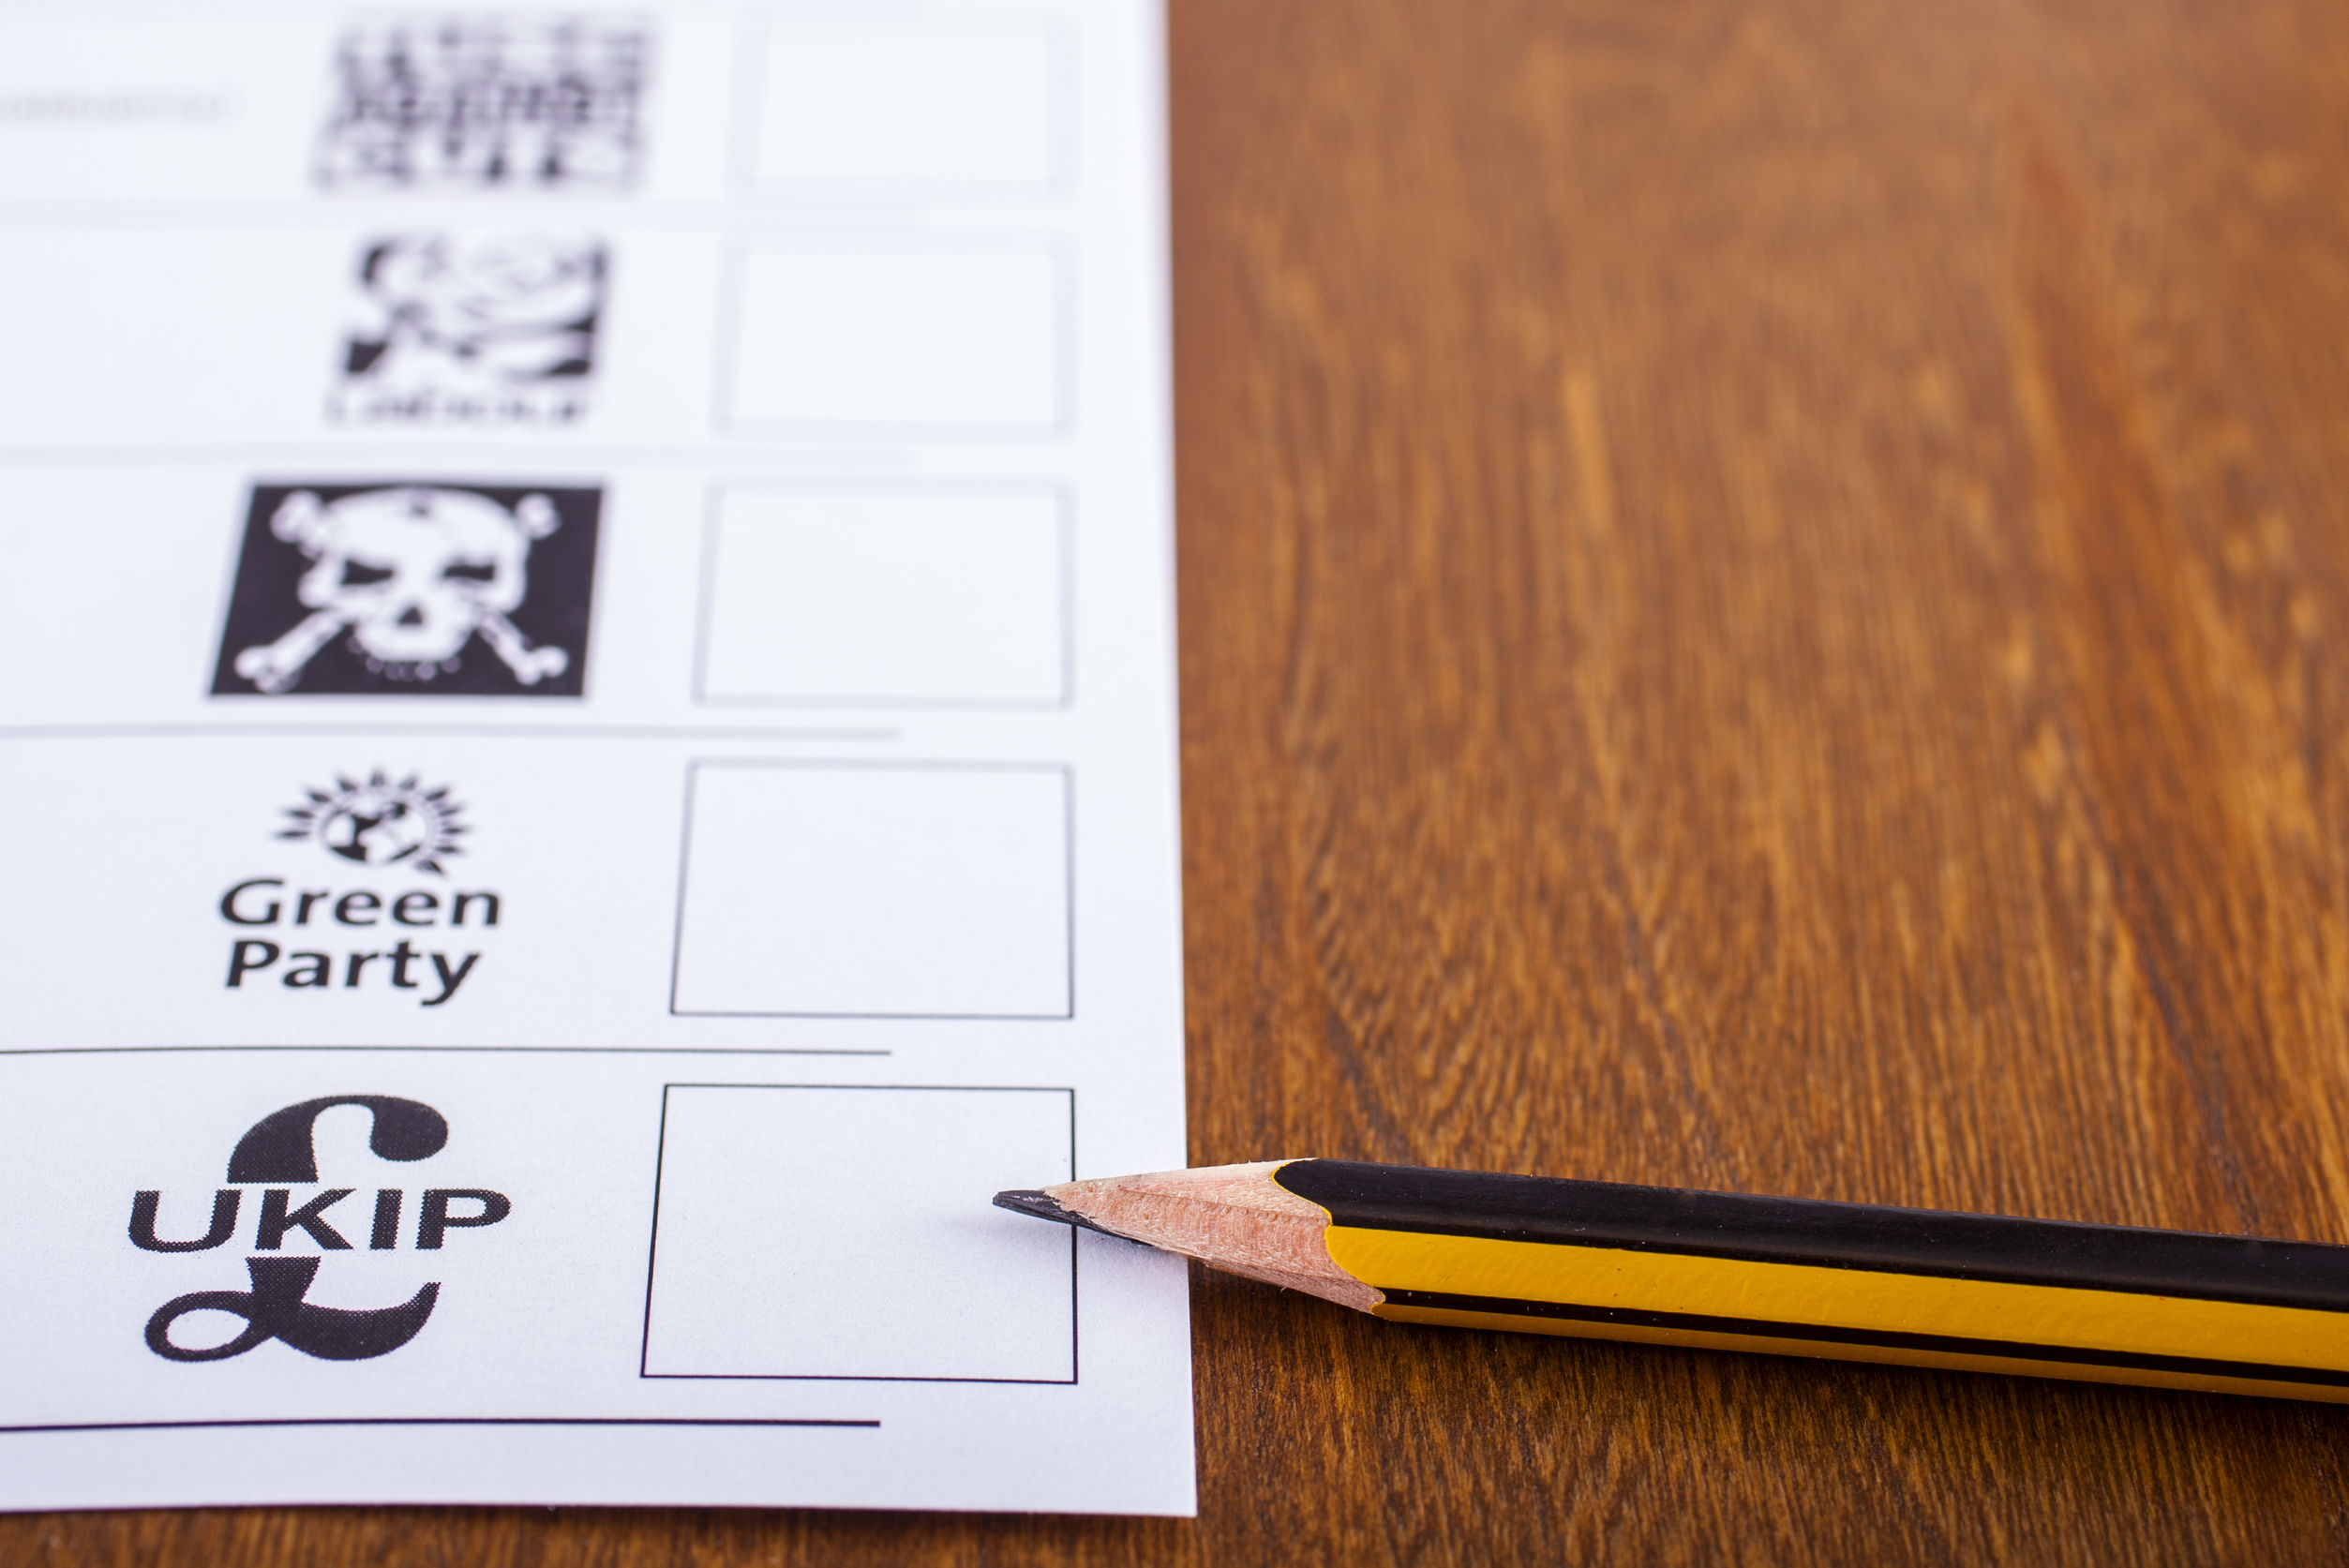 41052231 - london, uk - may 7th 2015: ukip (uk independence party) on a ballot paper for a general election, on 7th may 2015.